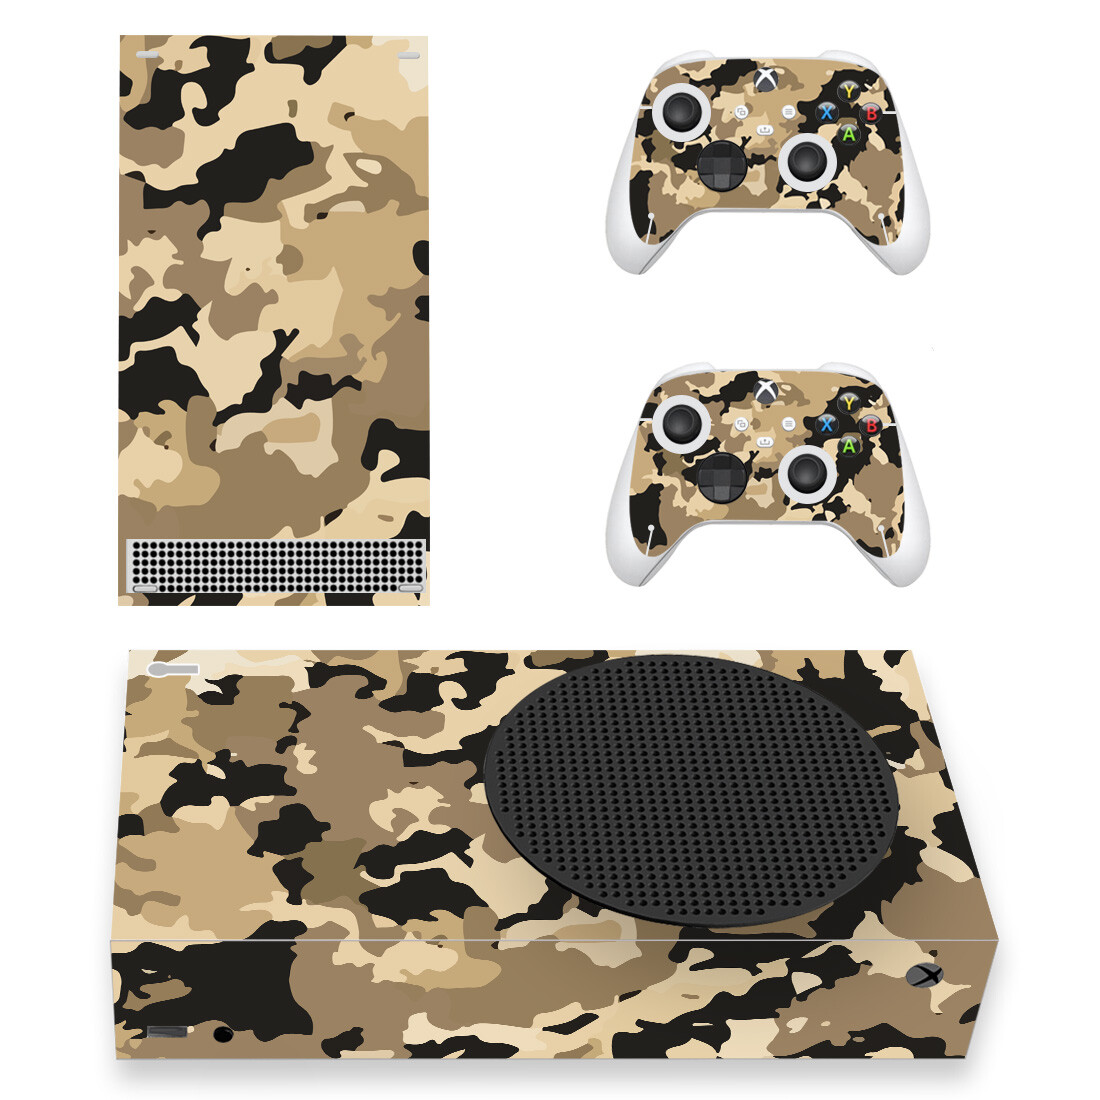 Brown Military Camouflage Skin Sticker For Xbox Series S And Controllers